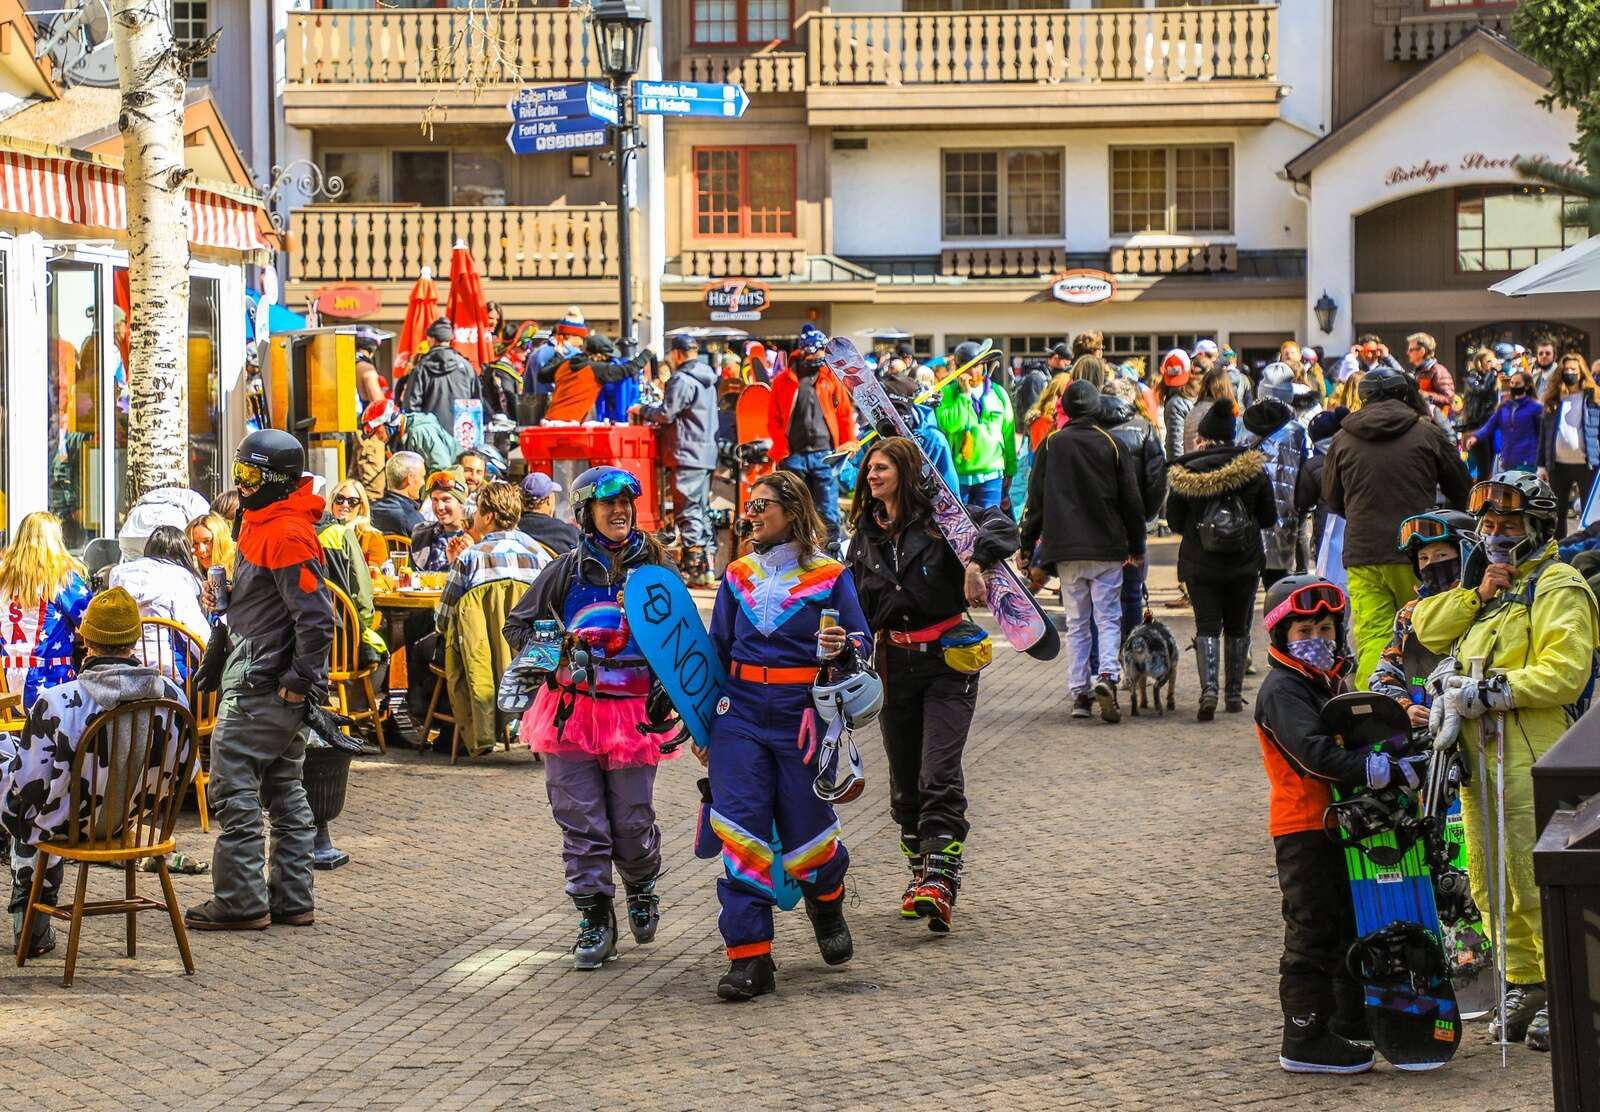 Vail modifies alcohol consumption areas